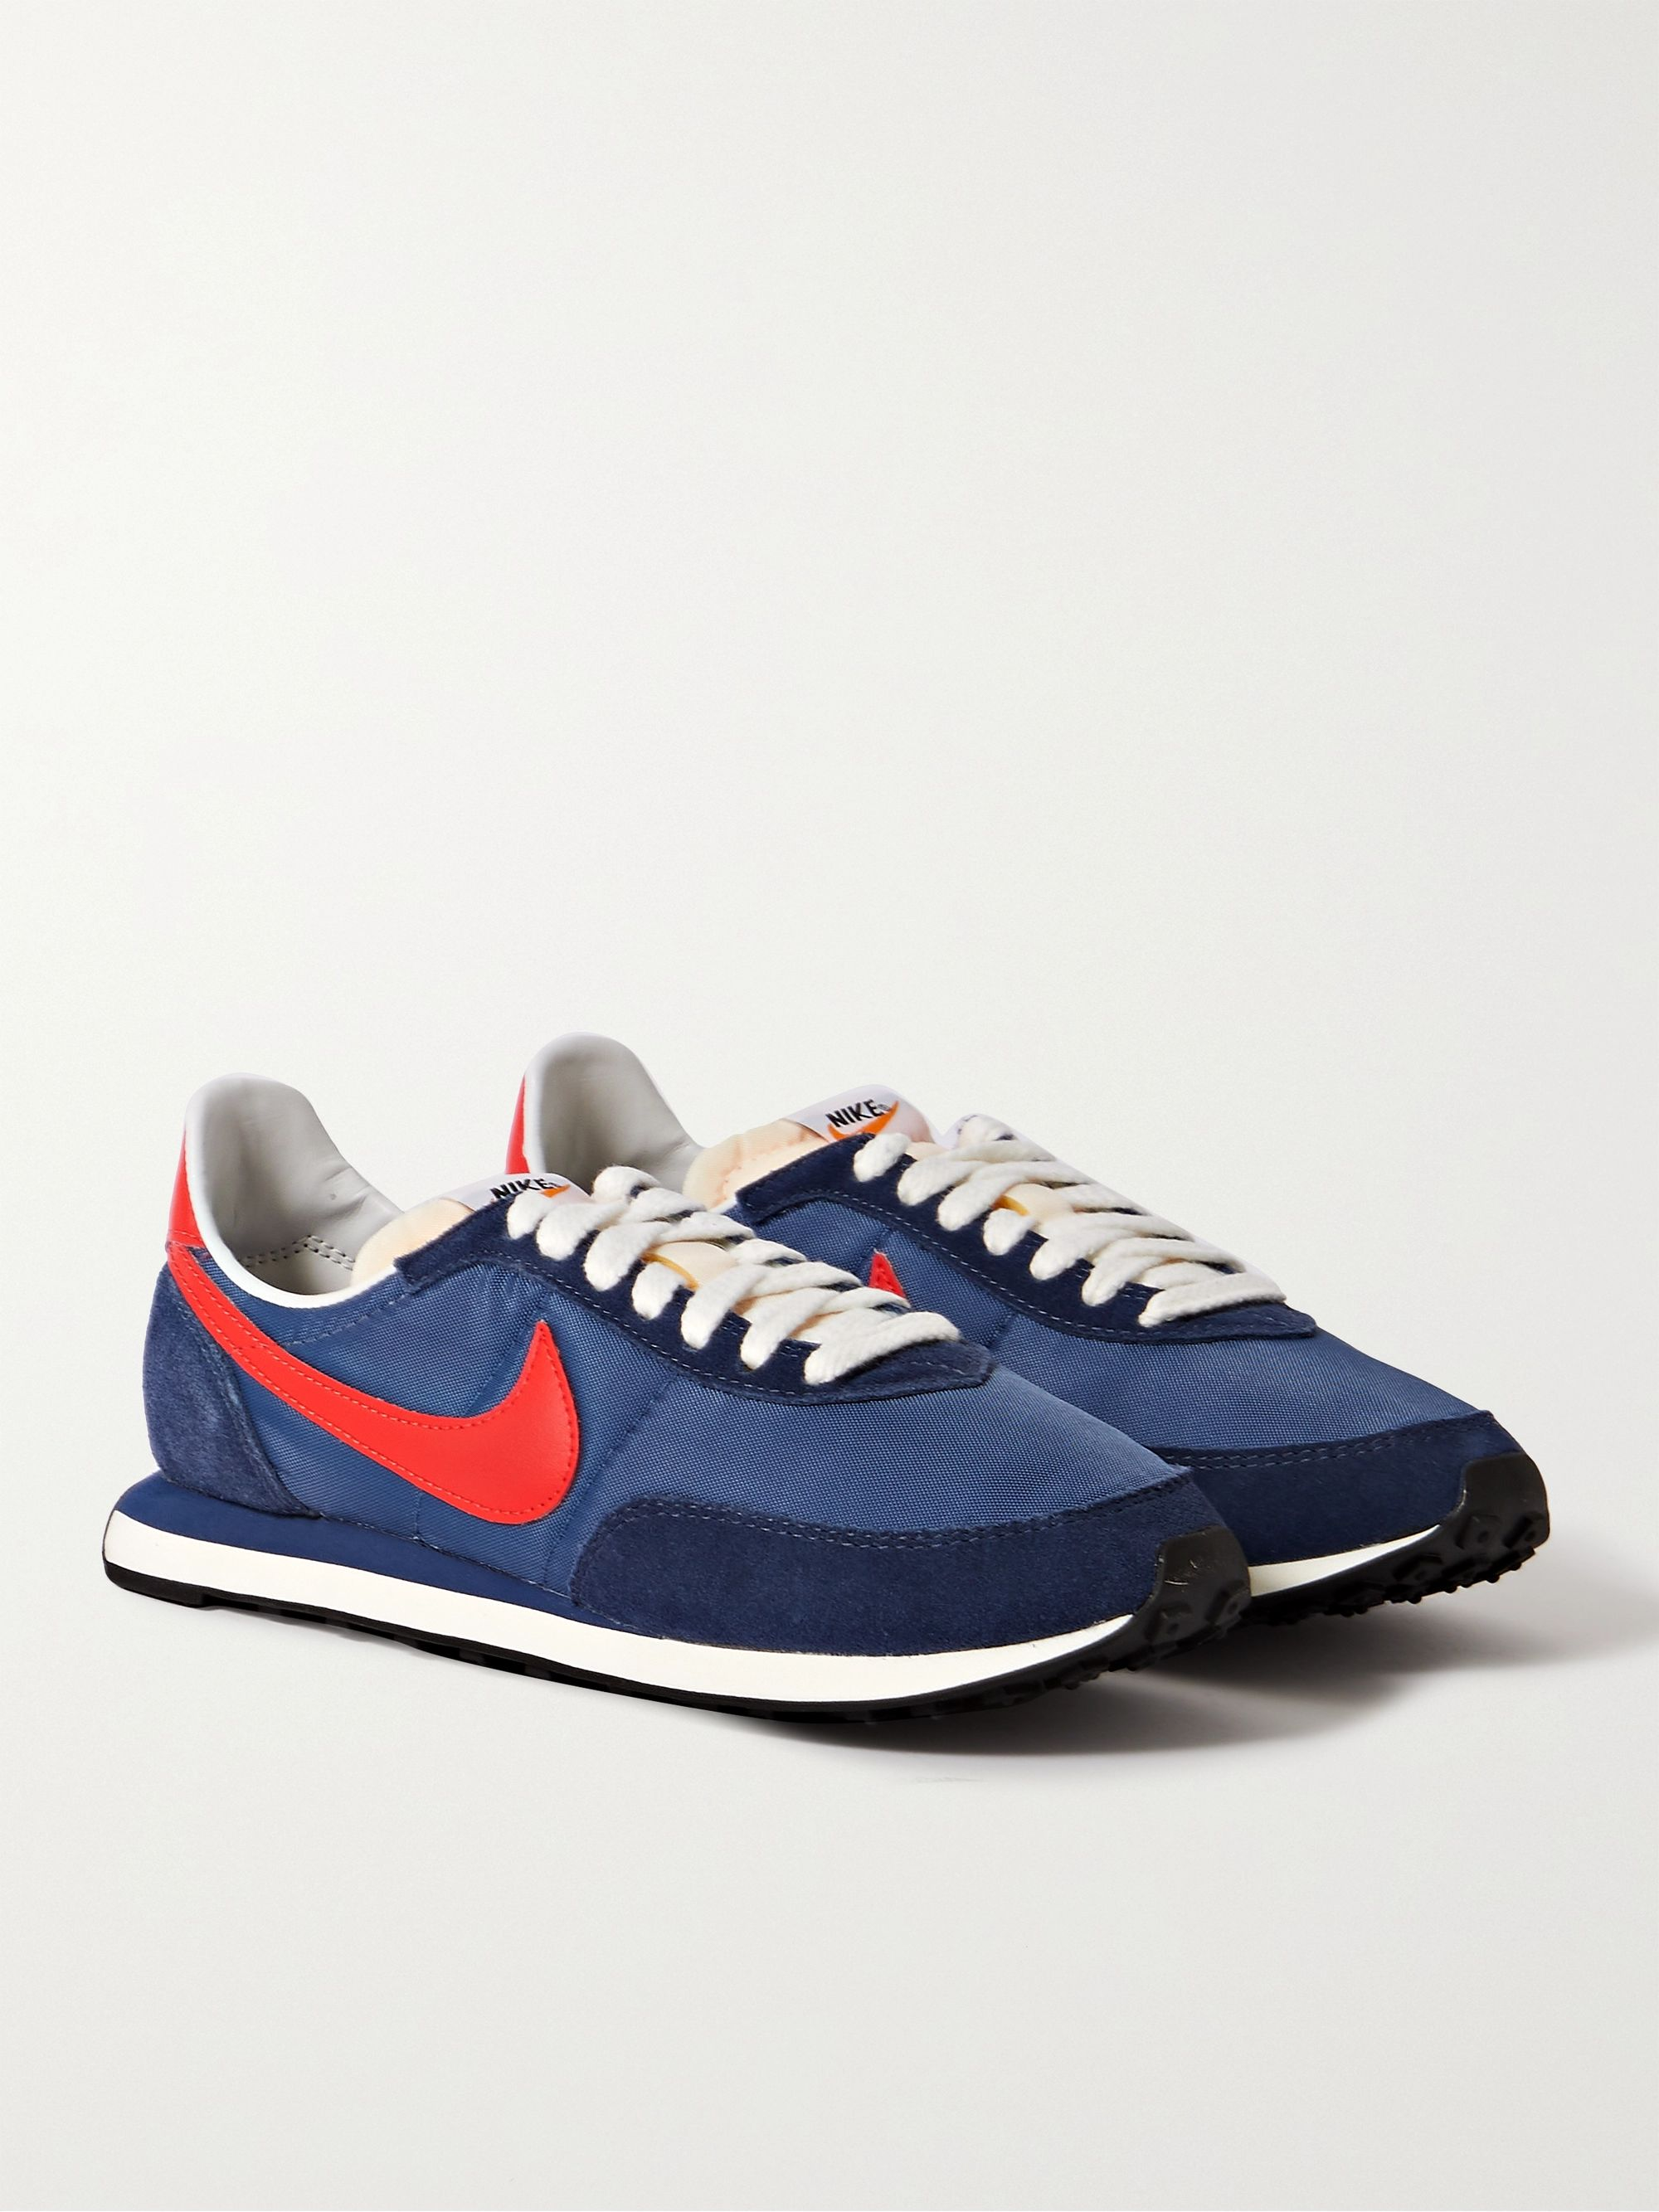 NIKE Waffle 2 SP Leather and Suede-Trimmed Nylon Sneakers